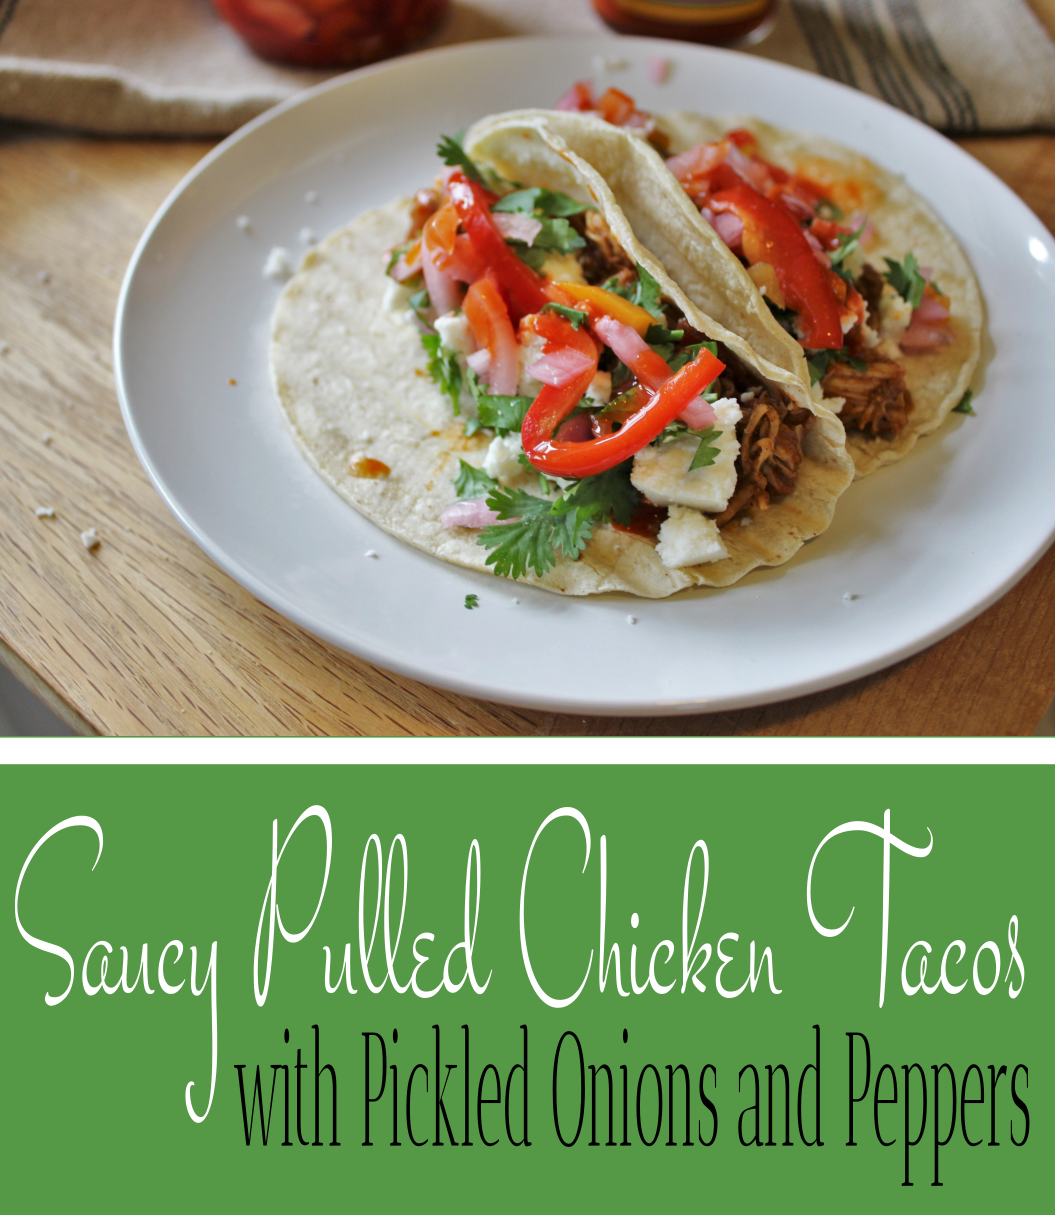 Saucy Pulled Chicken Tacos with Pickled Onions and Peppers